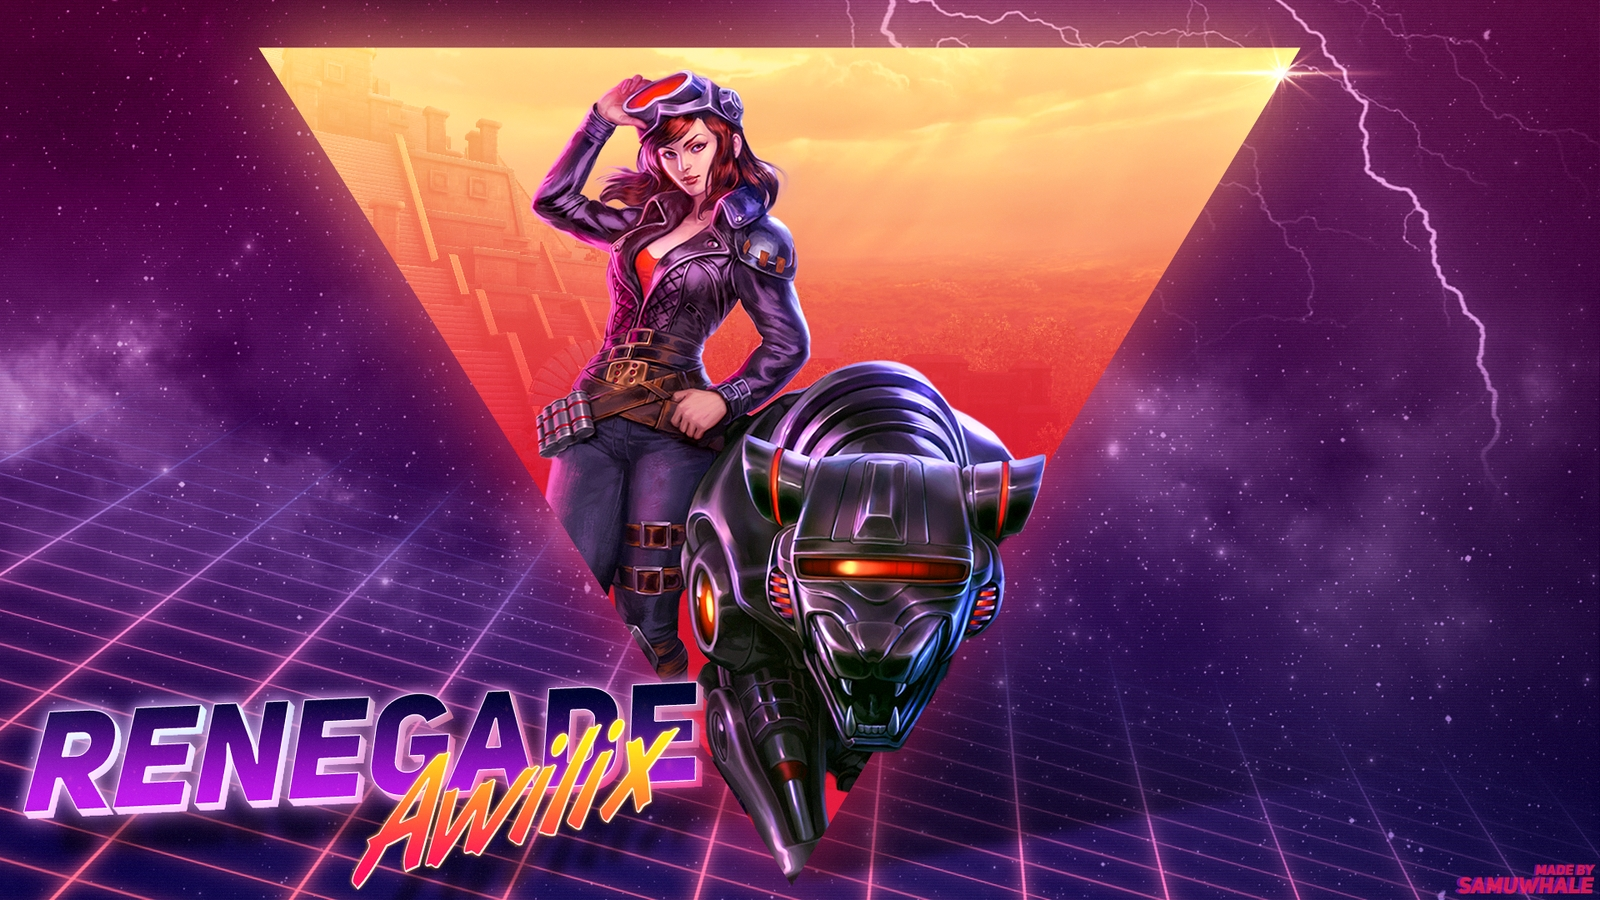 Unique Retro Wave Wallpaper 19201080 Download 80s Retro